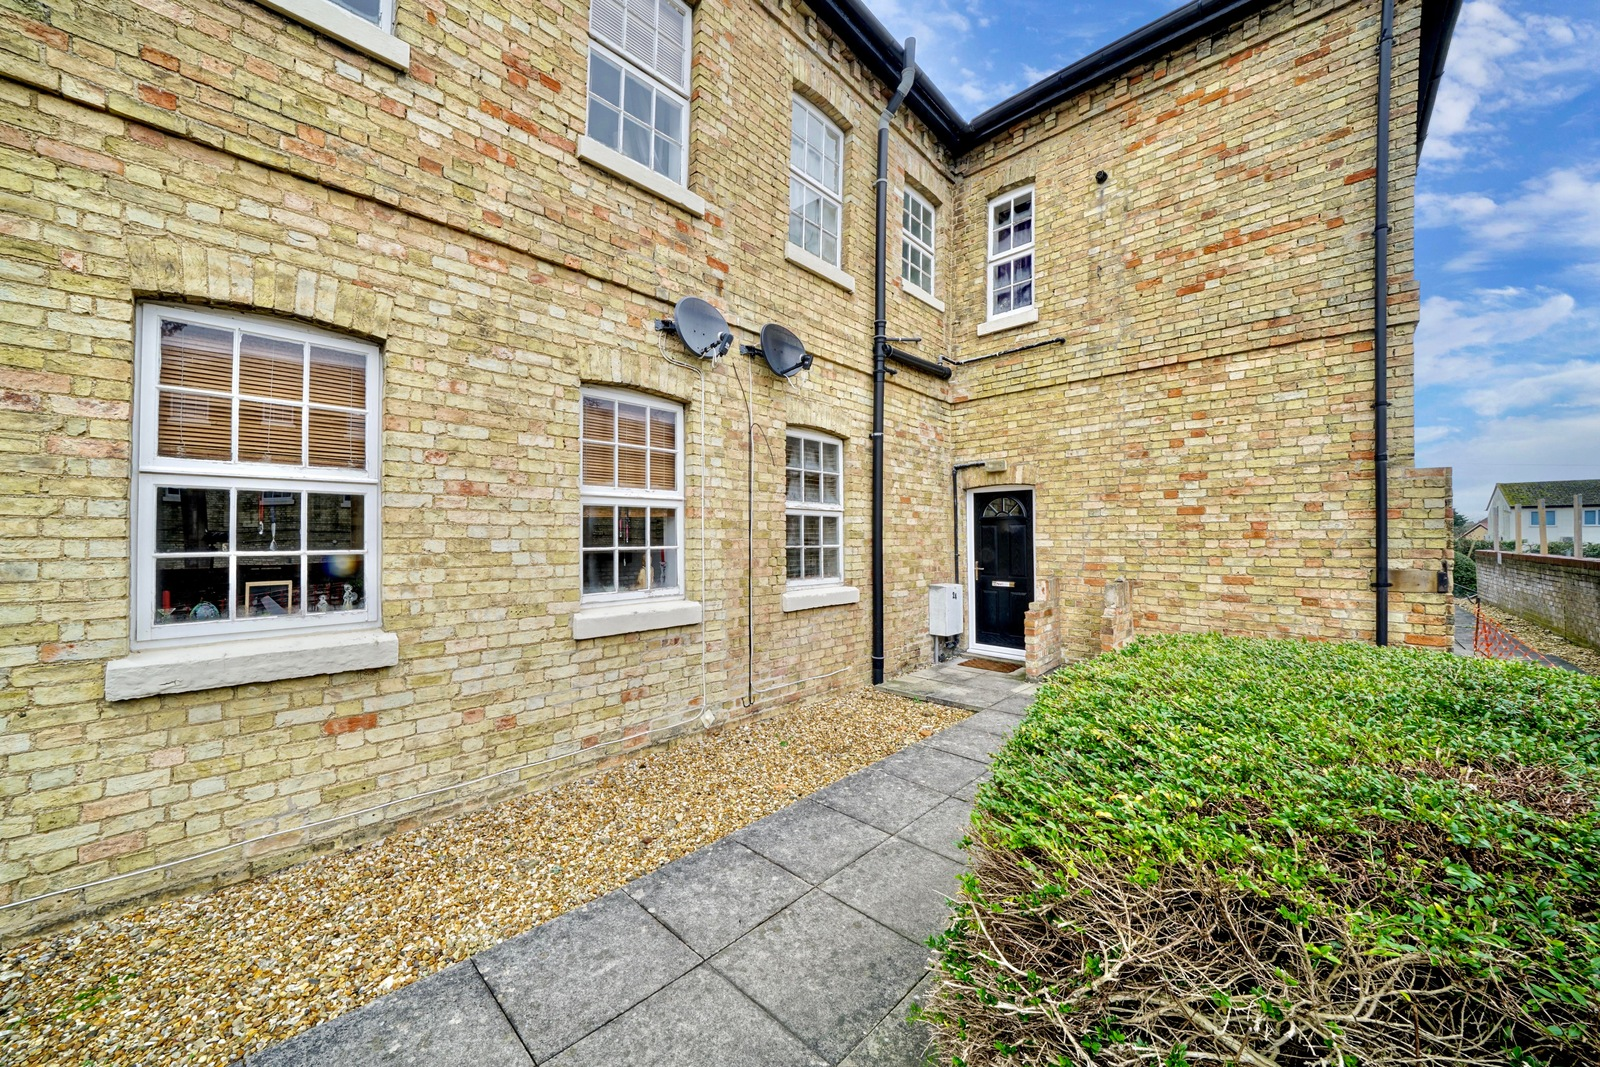 1 bed apartment for sale in Eaton Ford, Linclare Place, PE19 7AH, PE19